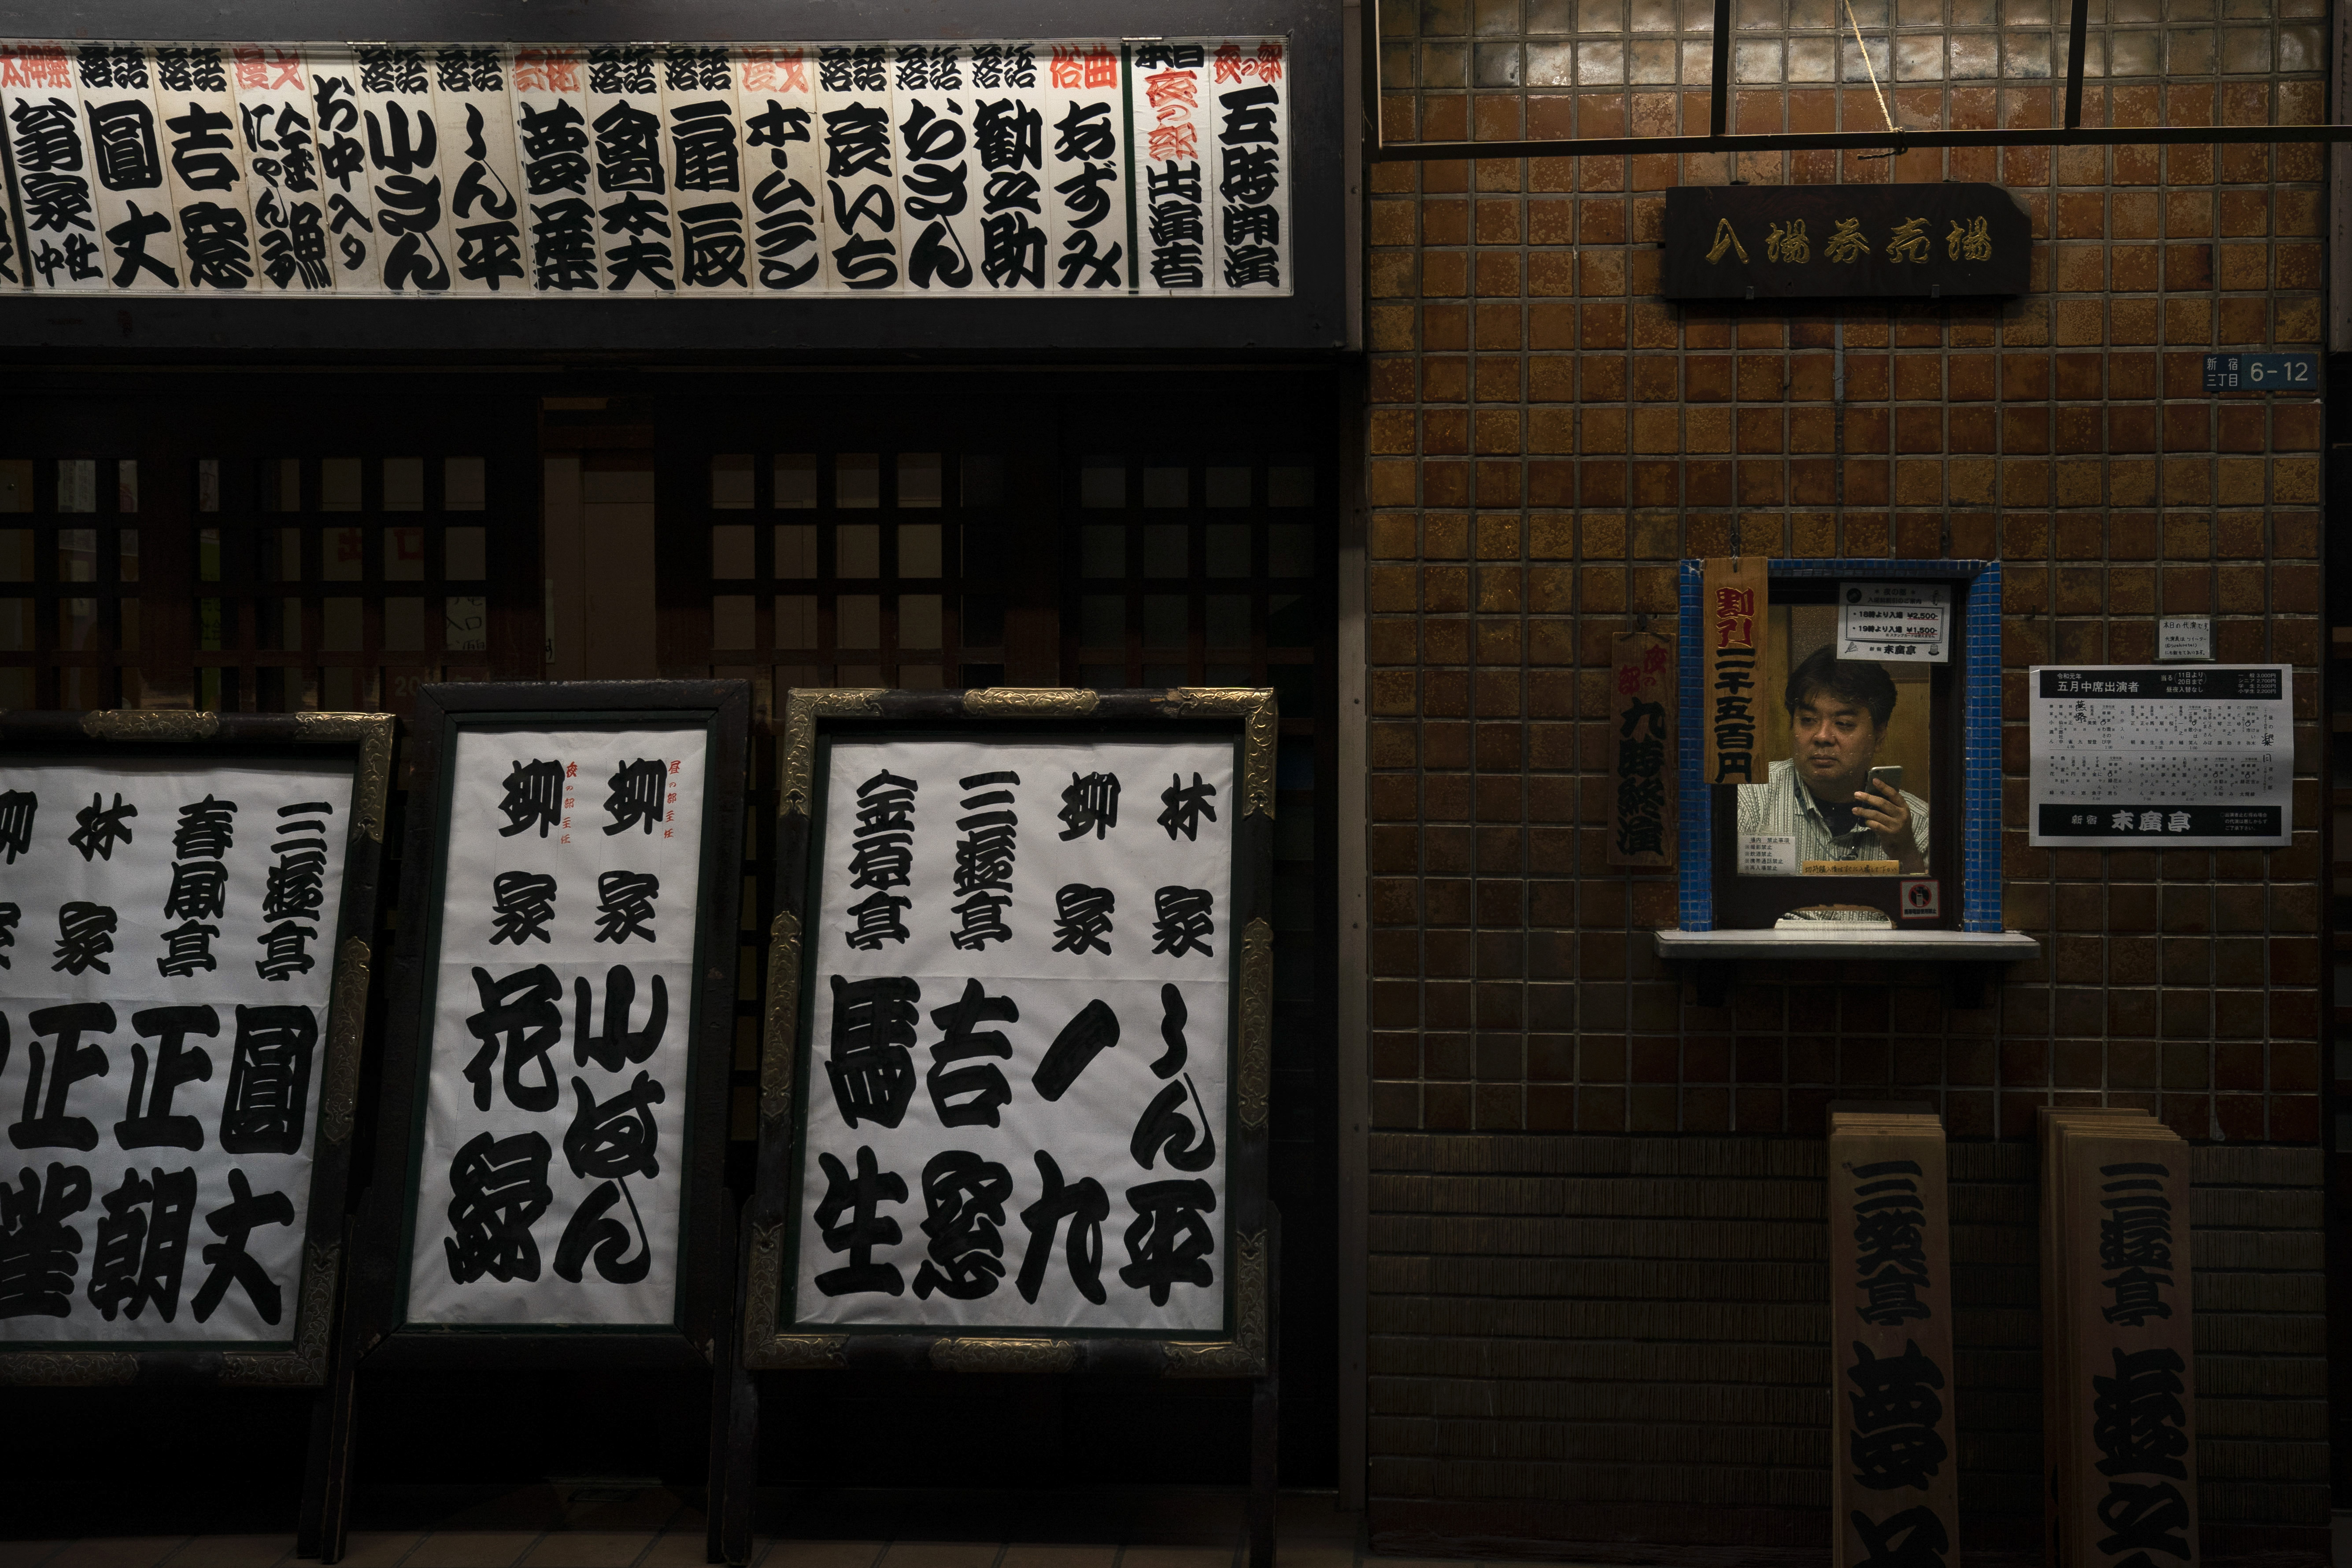 An employee sits in a ticket booth at Suehirotei yose, an entertainment hall where traditional Japanese storytelling called rakugo is performed, Monday, May 20, 2019, in Shinjuku district in Tokyo. (AP Photo/Jae C. Hong)